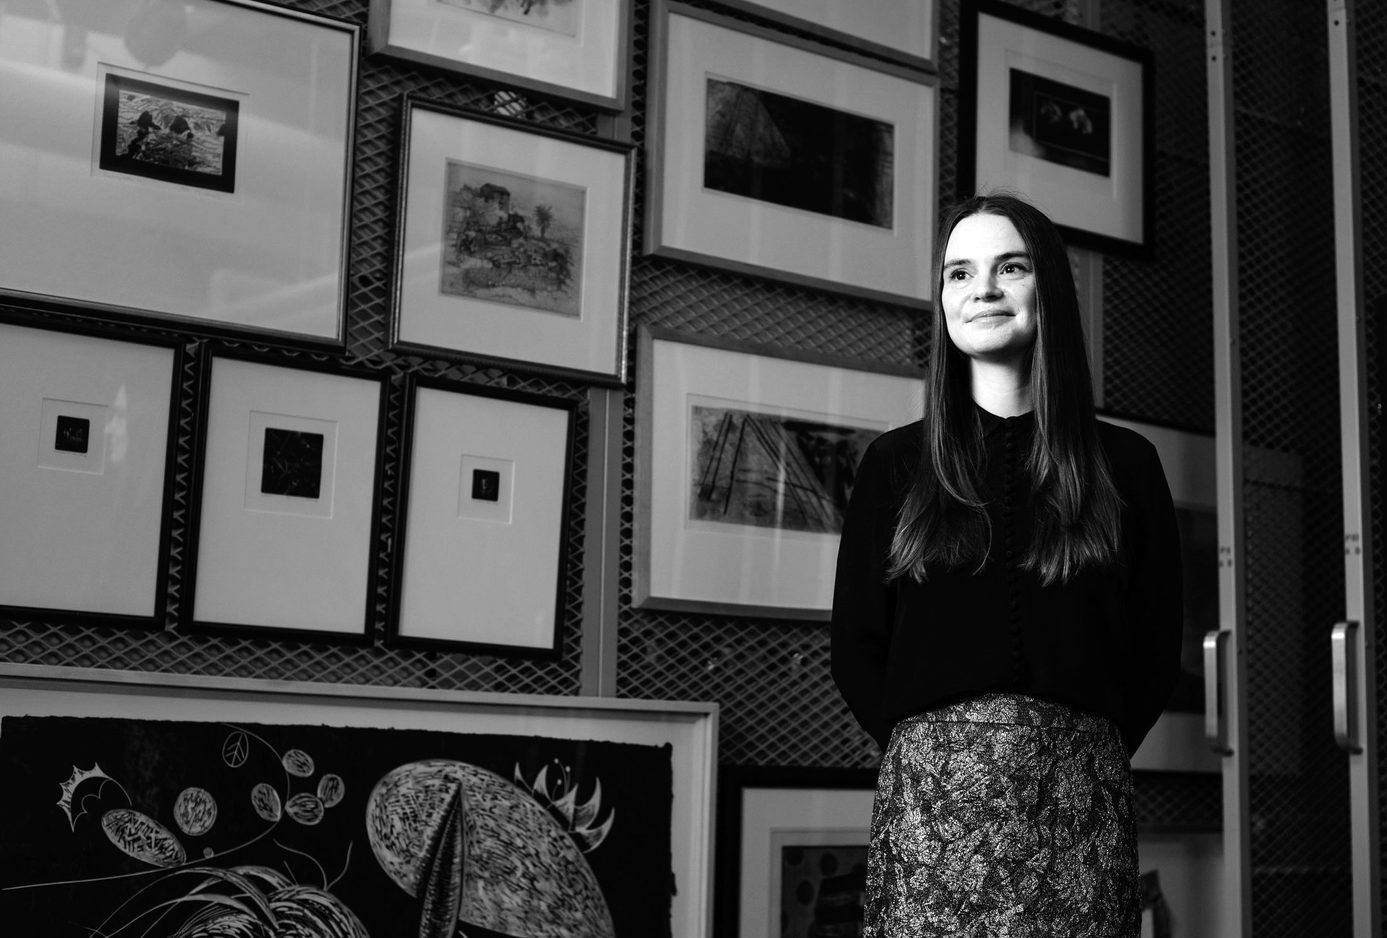 A woman with long hair stands in front of a wall of framed prints